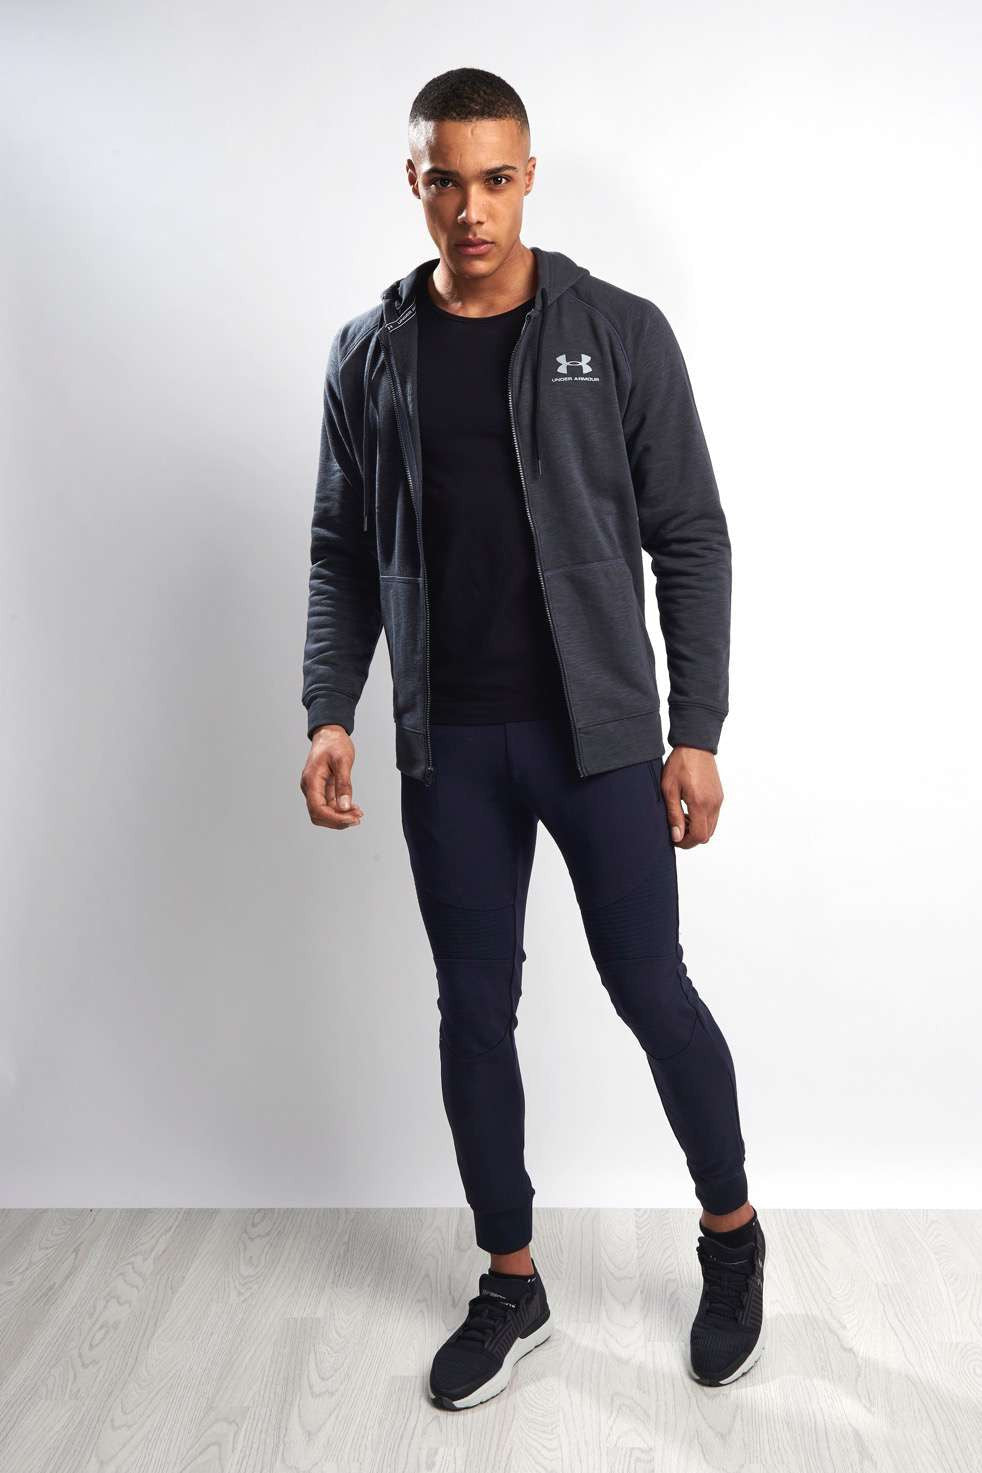 Under Armour UA Sportstyle Fleece Full Zip Hoody - Black image 4 - The Sports Edit